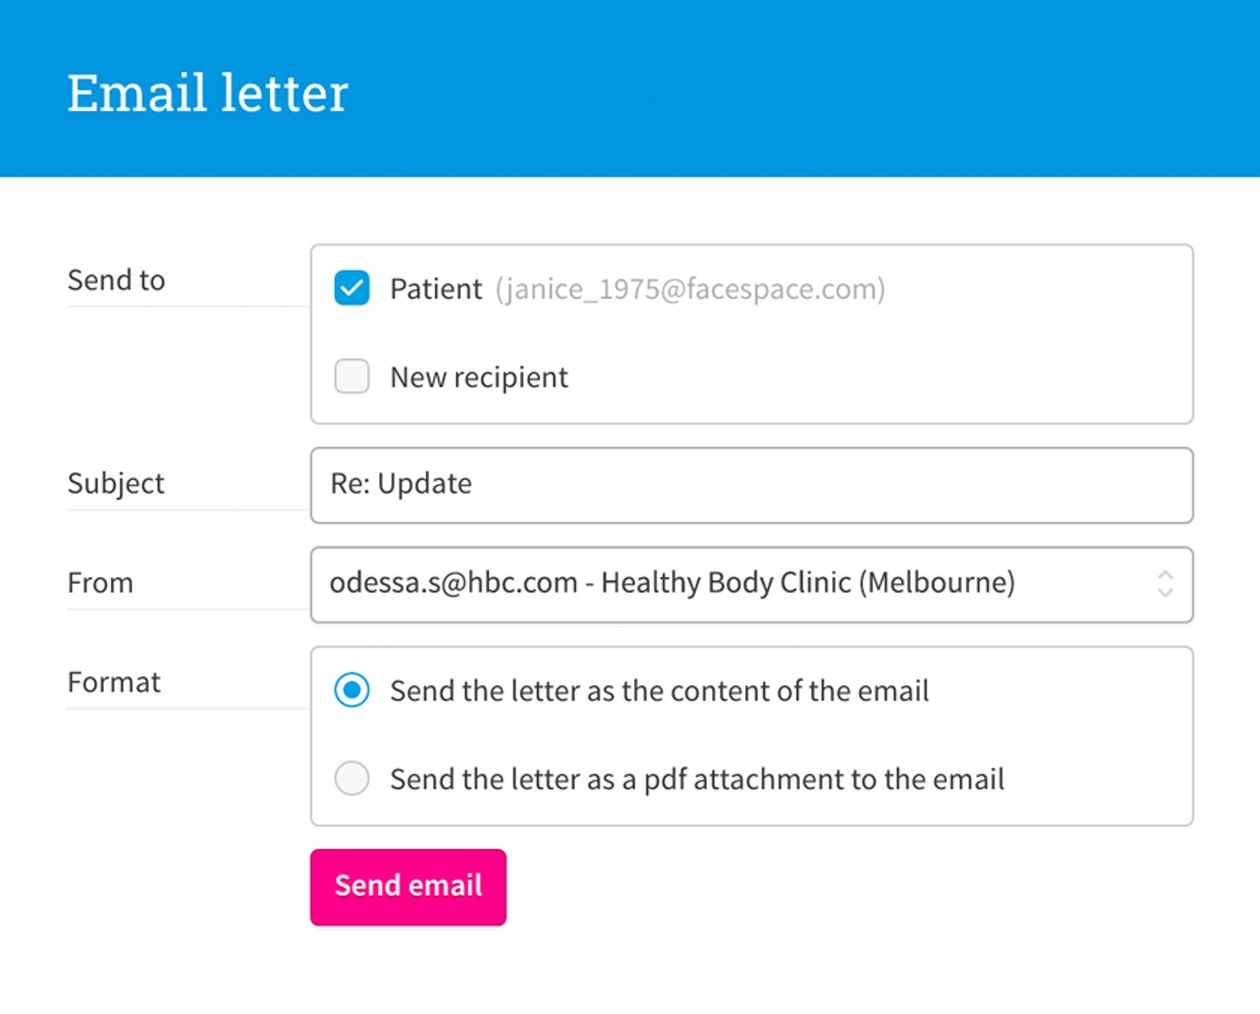 Email letter form with subject, recipient information and formatting options.